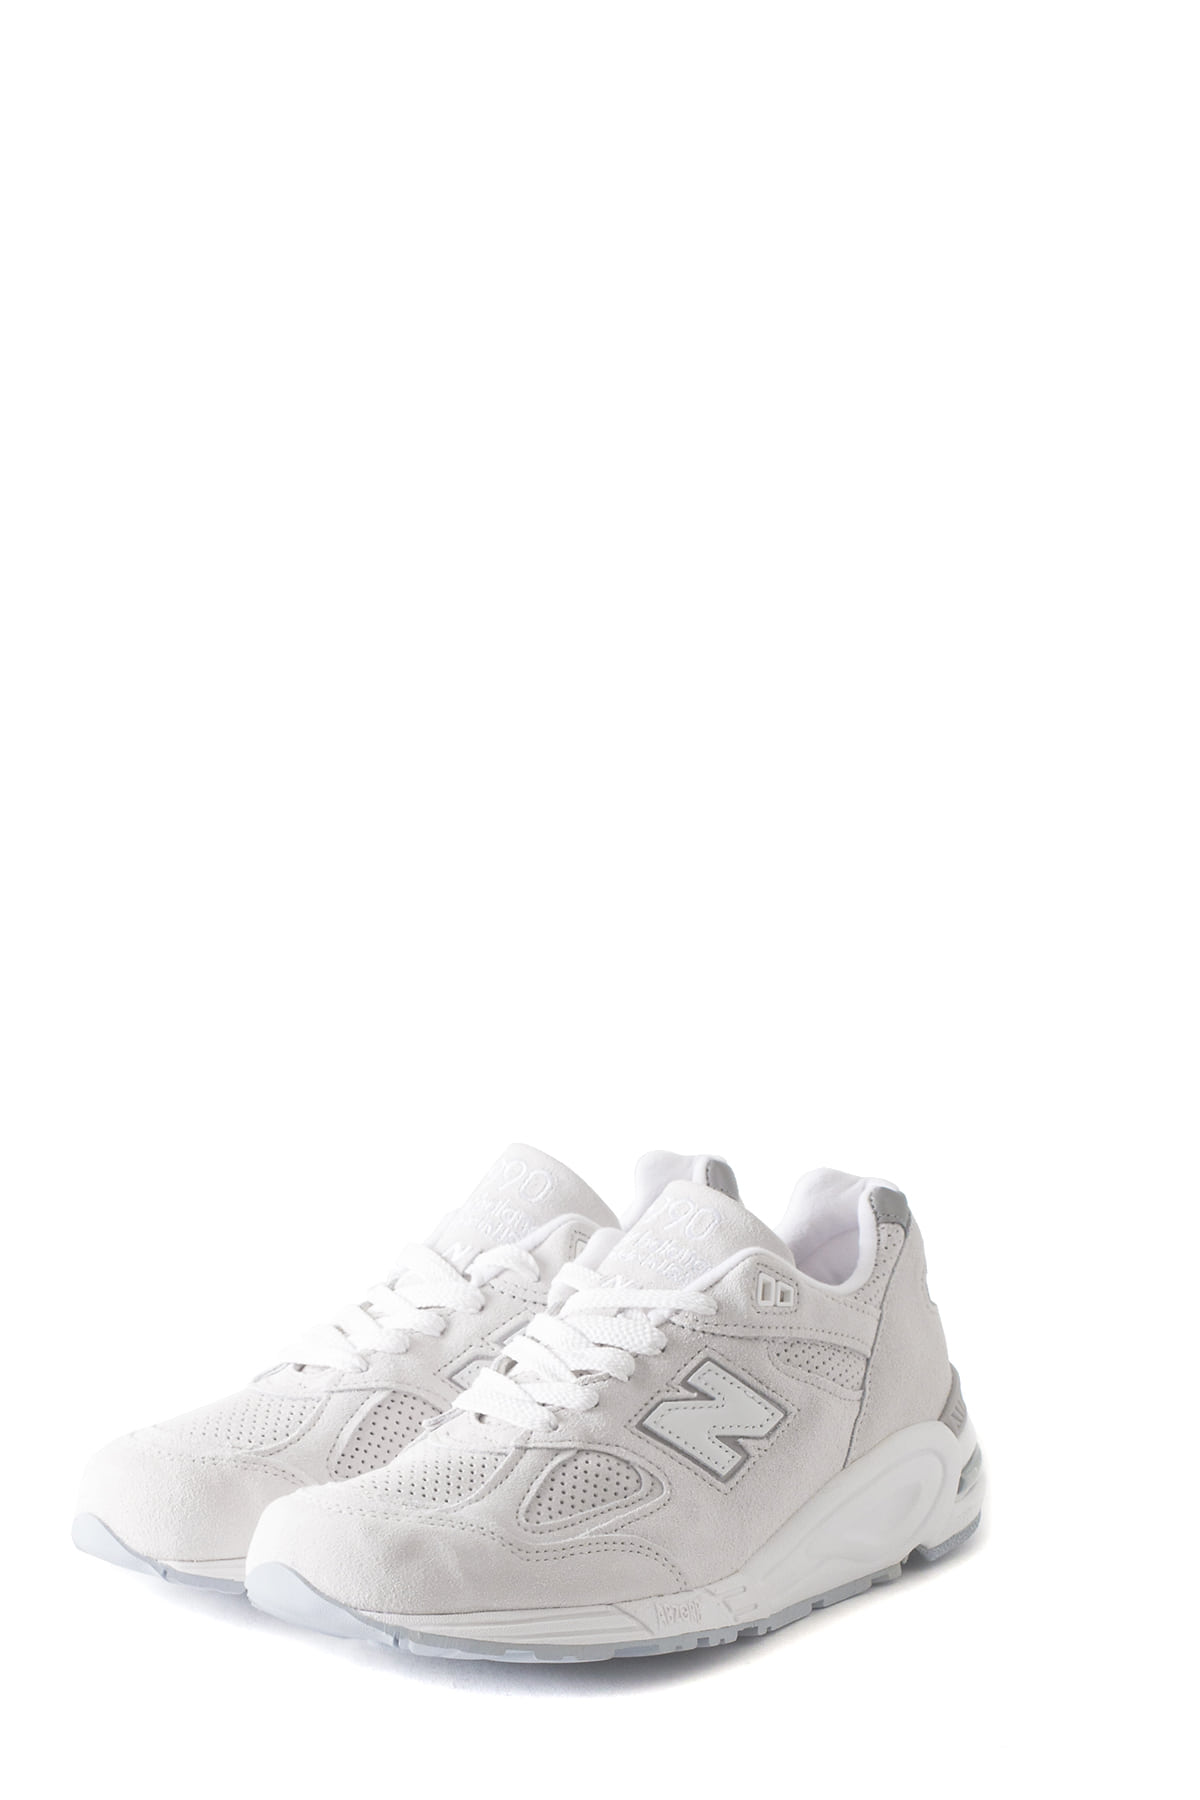 New Balance : M990NC2 (White)